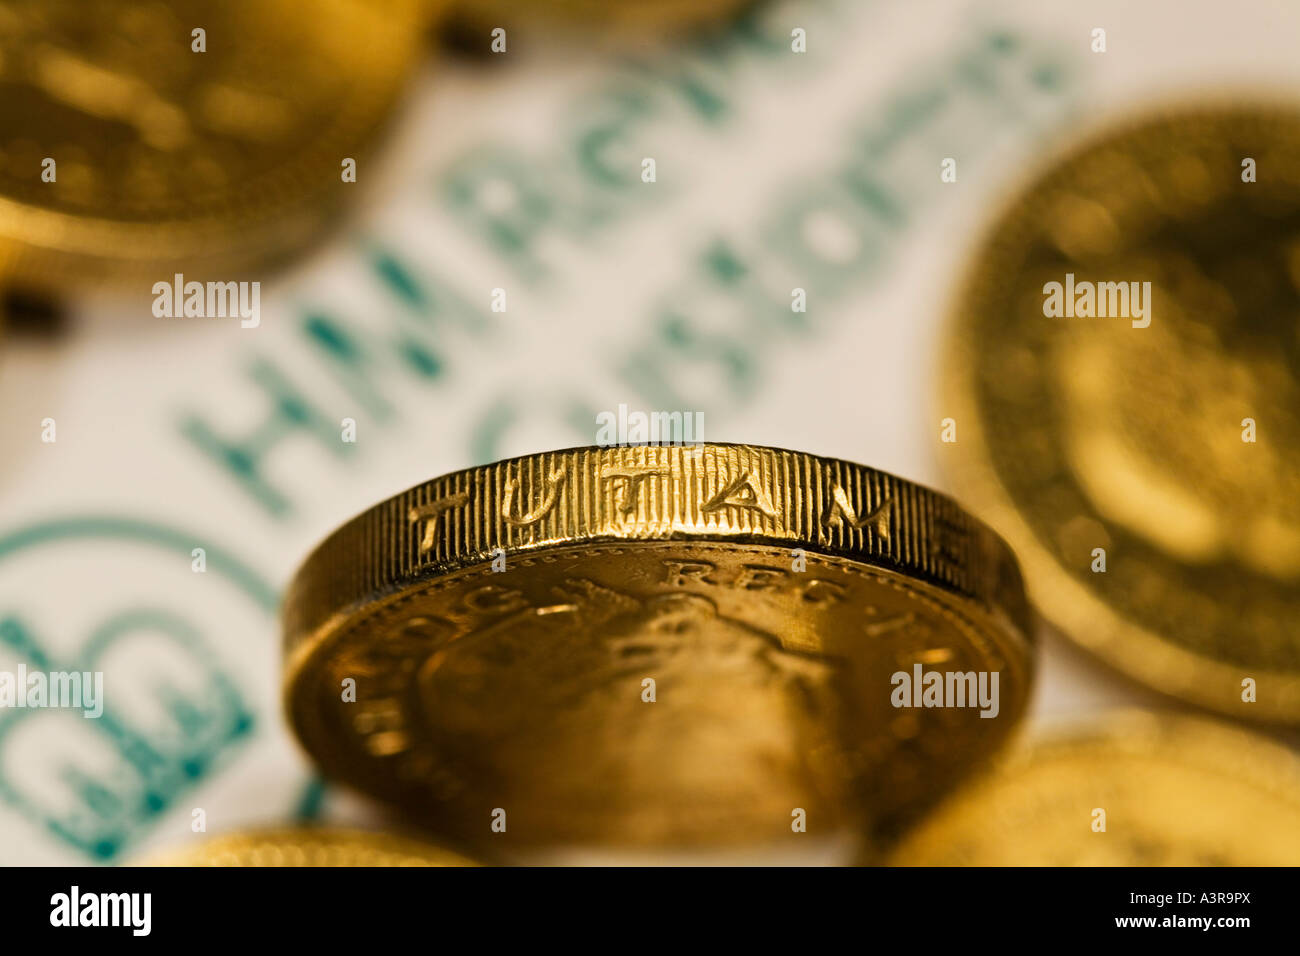 HM Revenue Customs document surrounded by pound coins - Stock Image